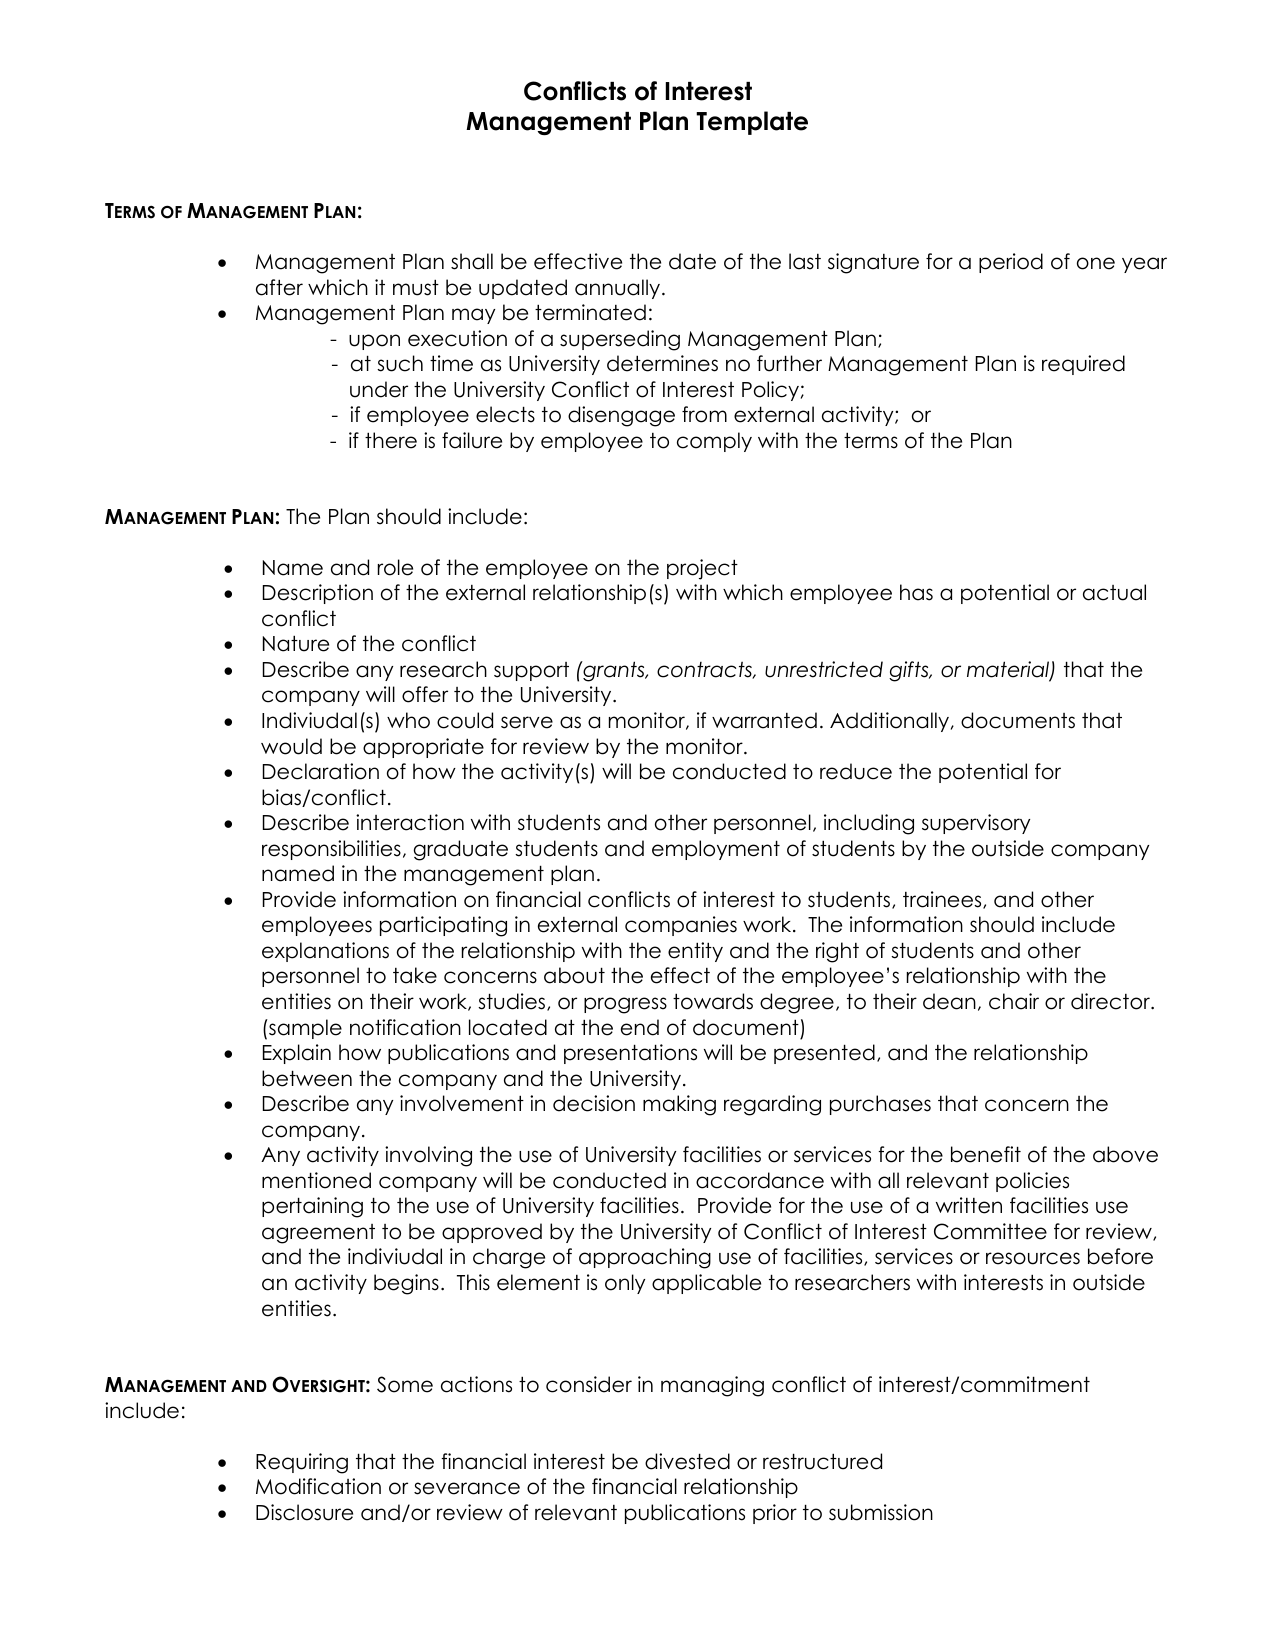 Conflicts of interest management plan template pronofoot35fo Images